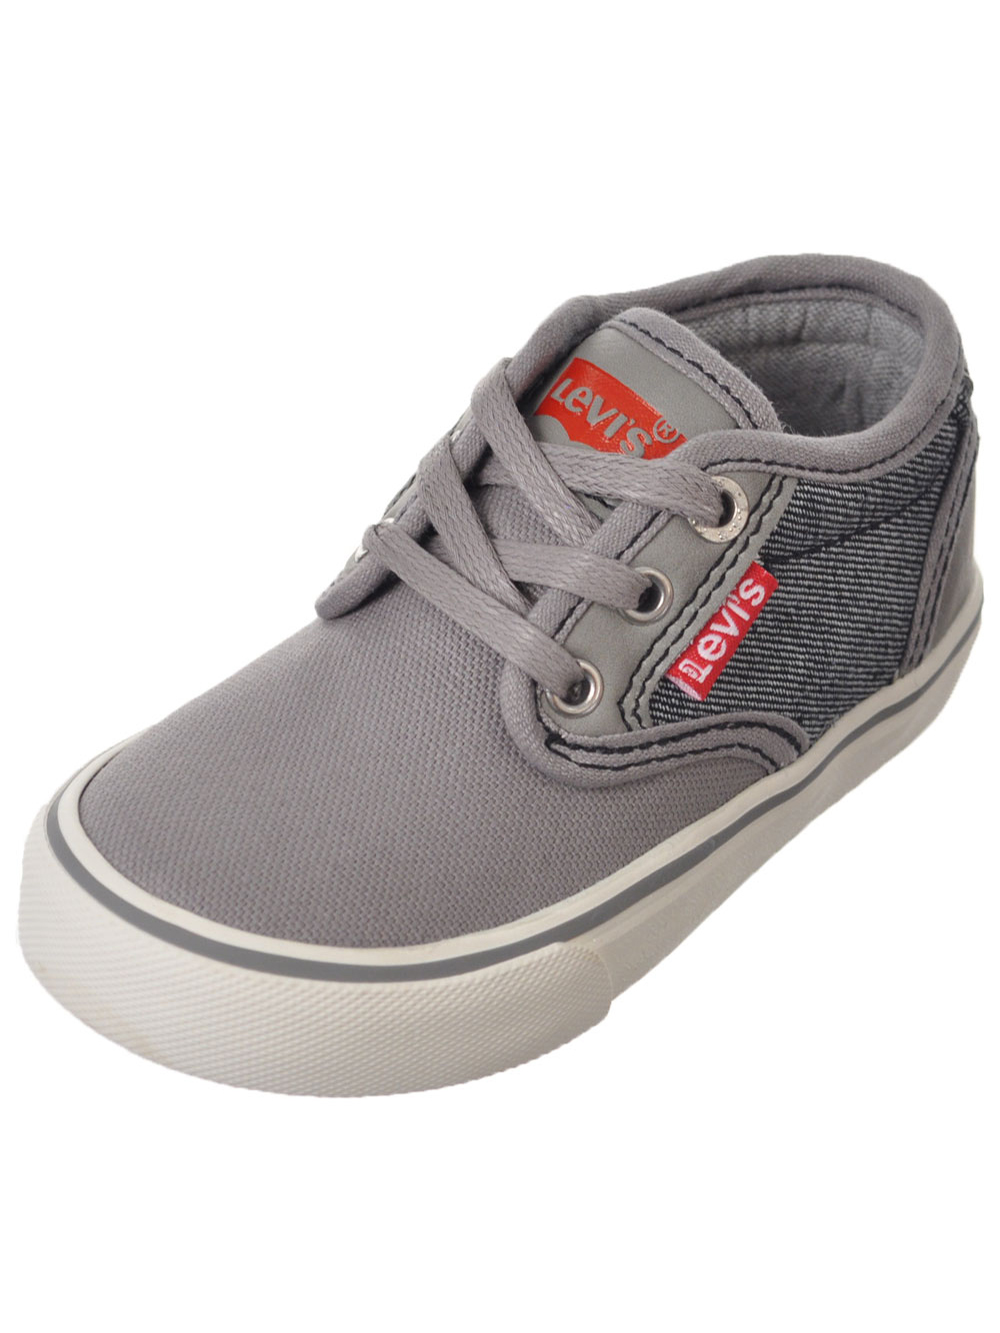 "Levi's Boys' ""Cali Denim"" Low-Top Sneakers (Toddler Sizes 5 - 10) - gray, 9 toddler"